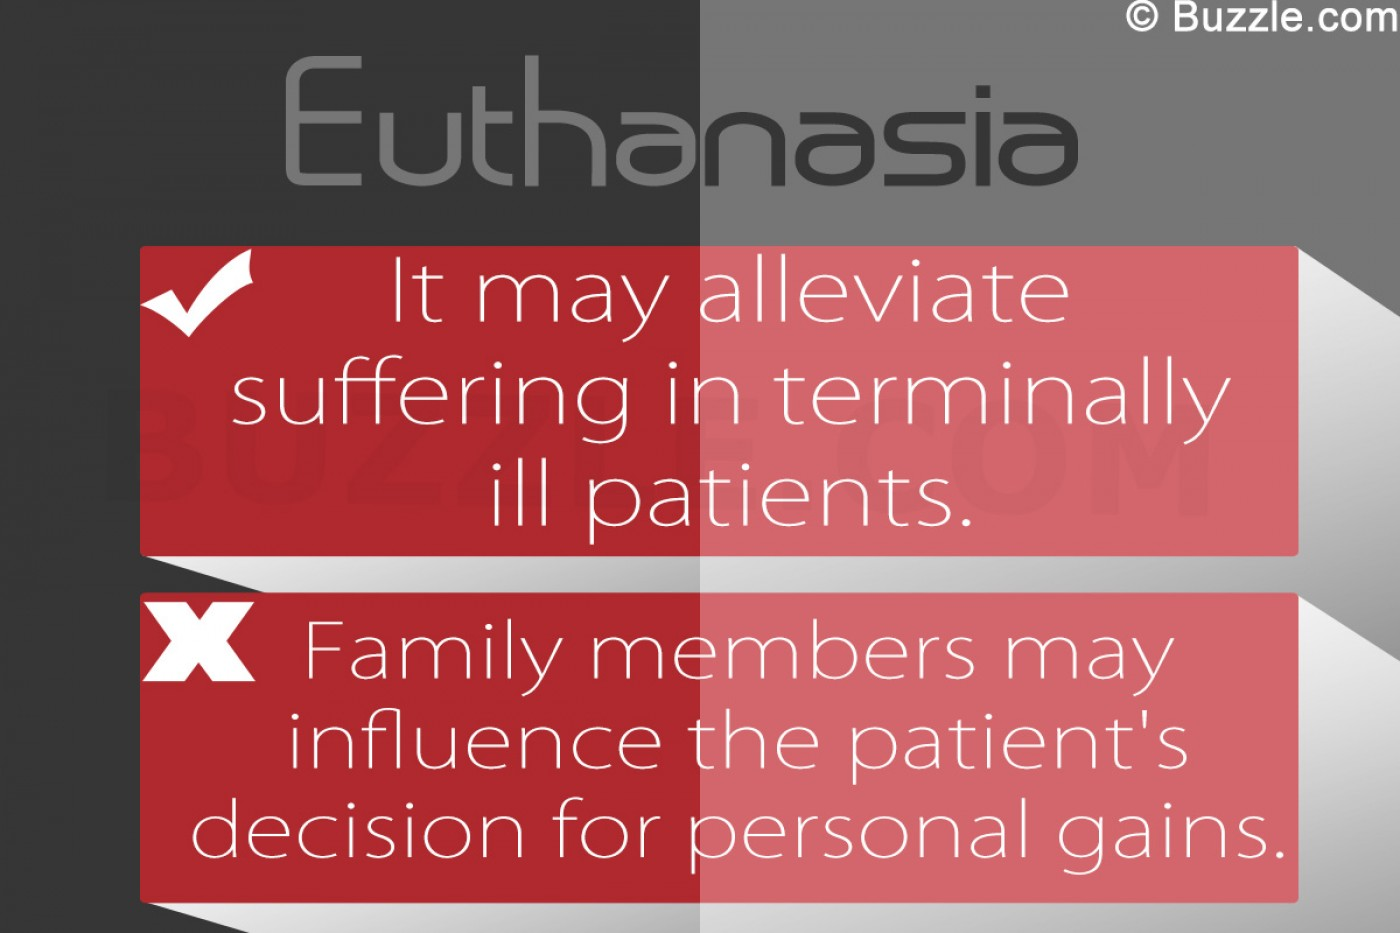 001 Essay Example Euthanasia Pros And Cons Magnificent 1400